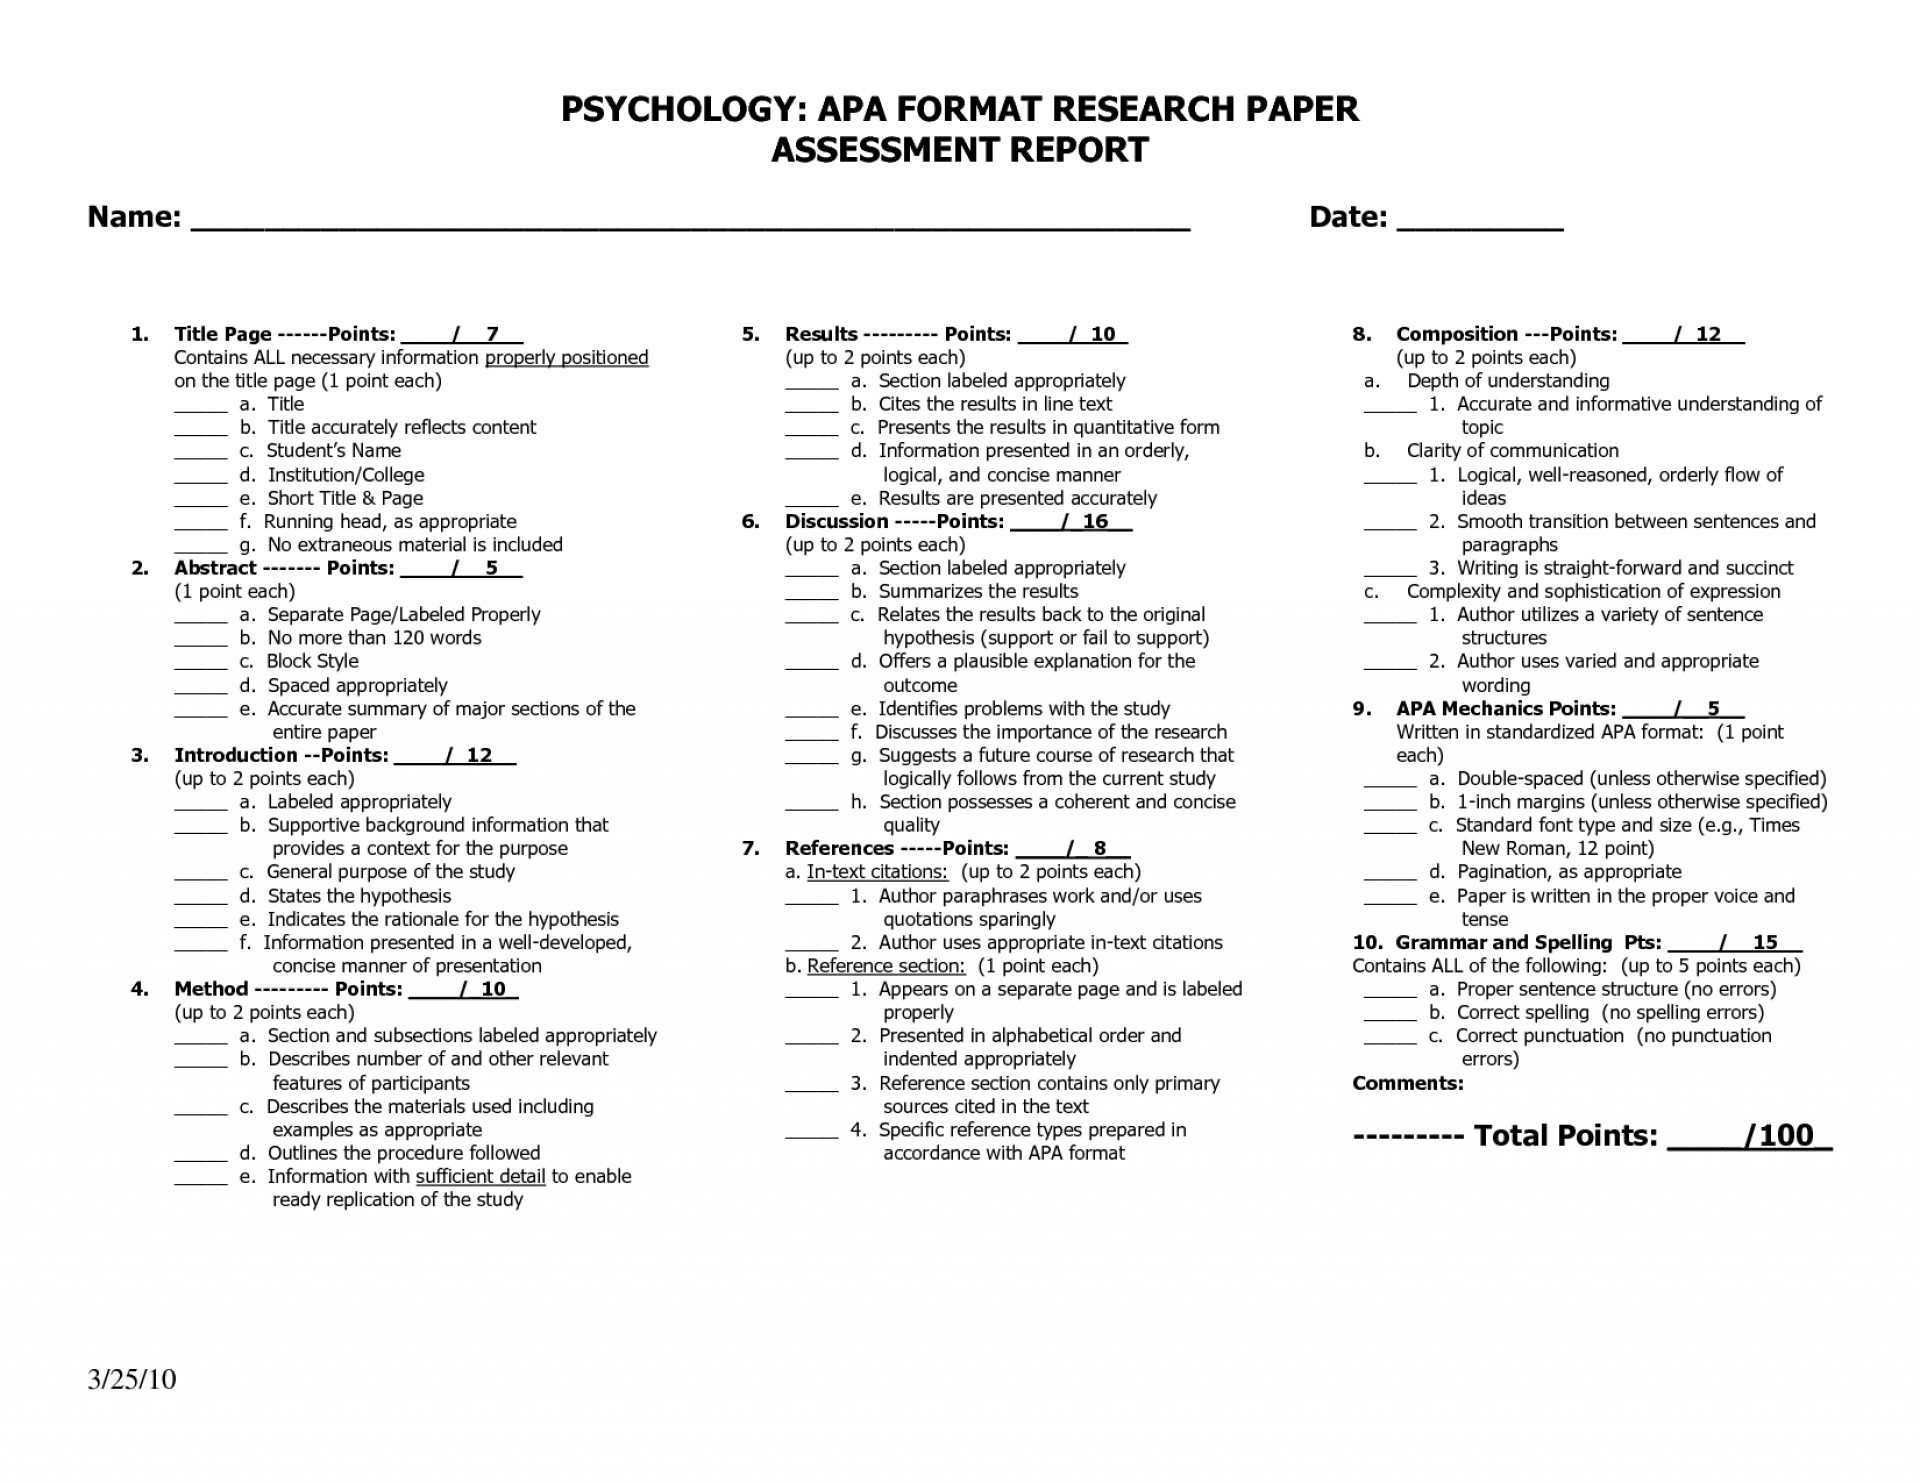 009 Apa Format For Psychology Research Paper How To Write Magnificent An 1920